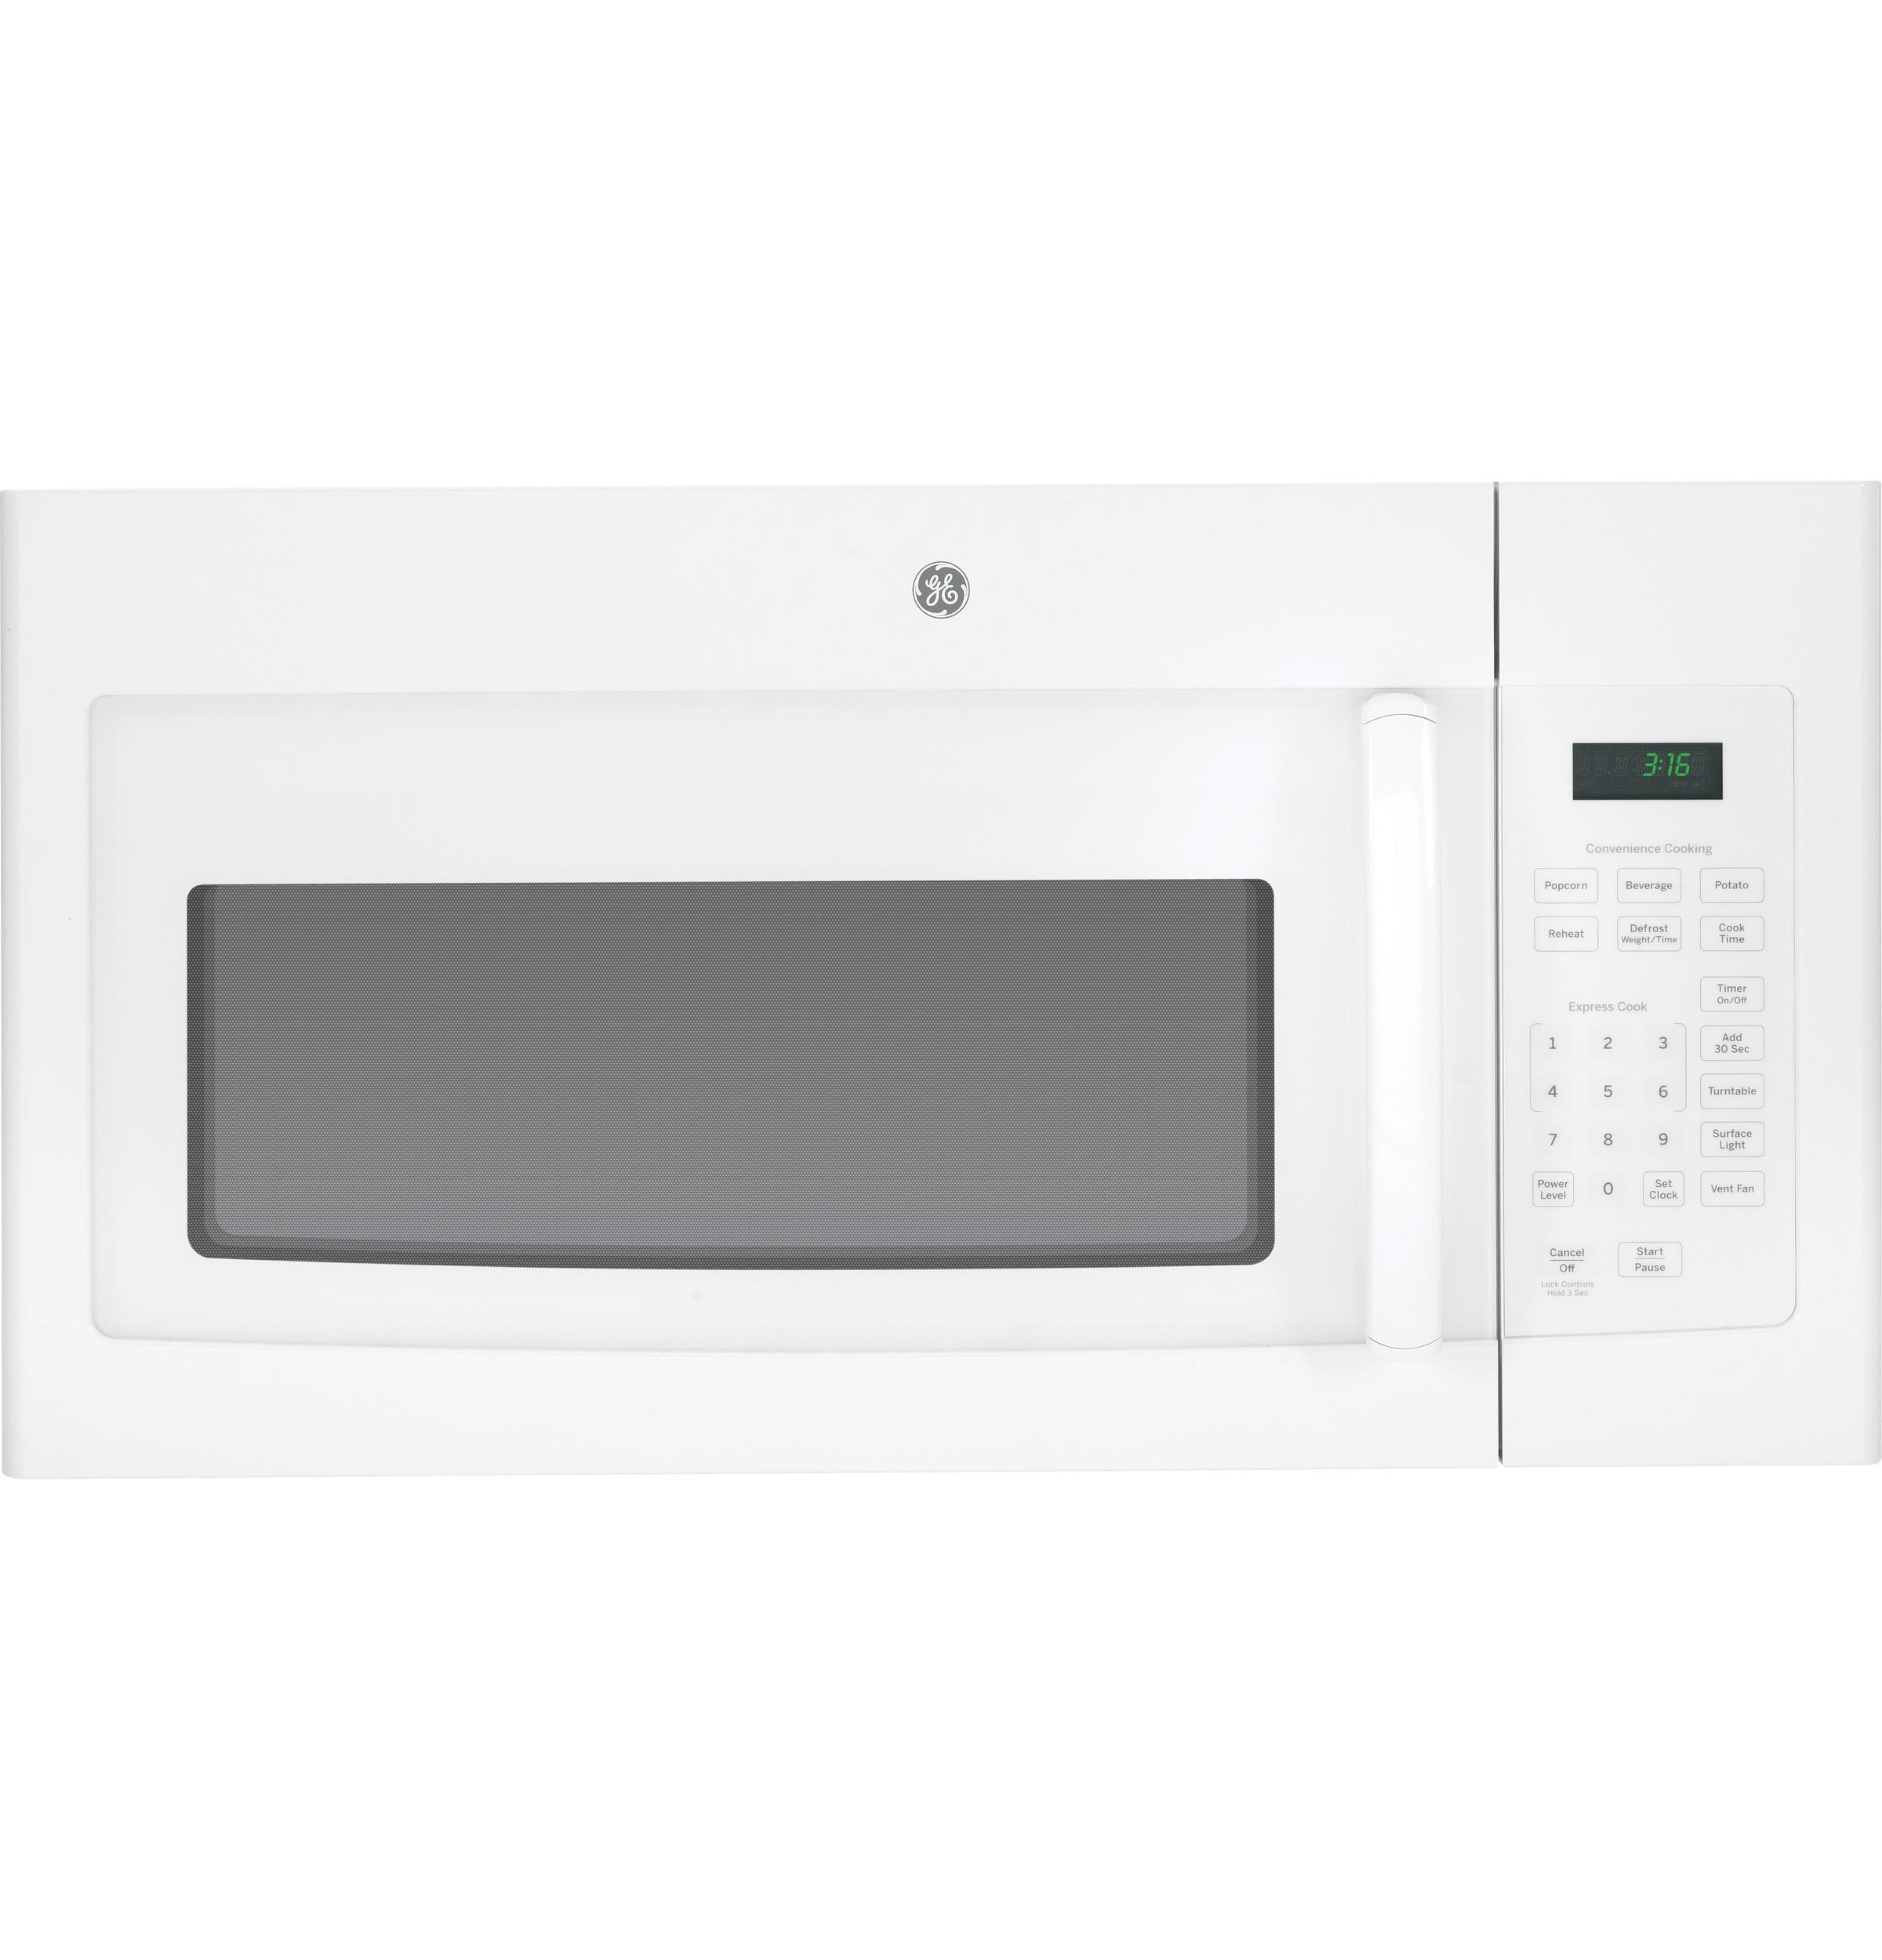 microwaves 1 6 cu ft over the range microwave oven with convenience cooking controls by ge appliances at vandrie home furnishings